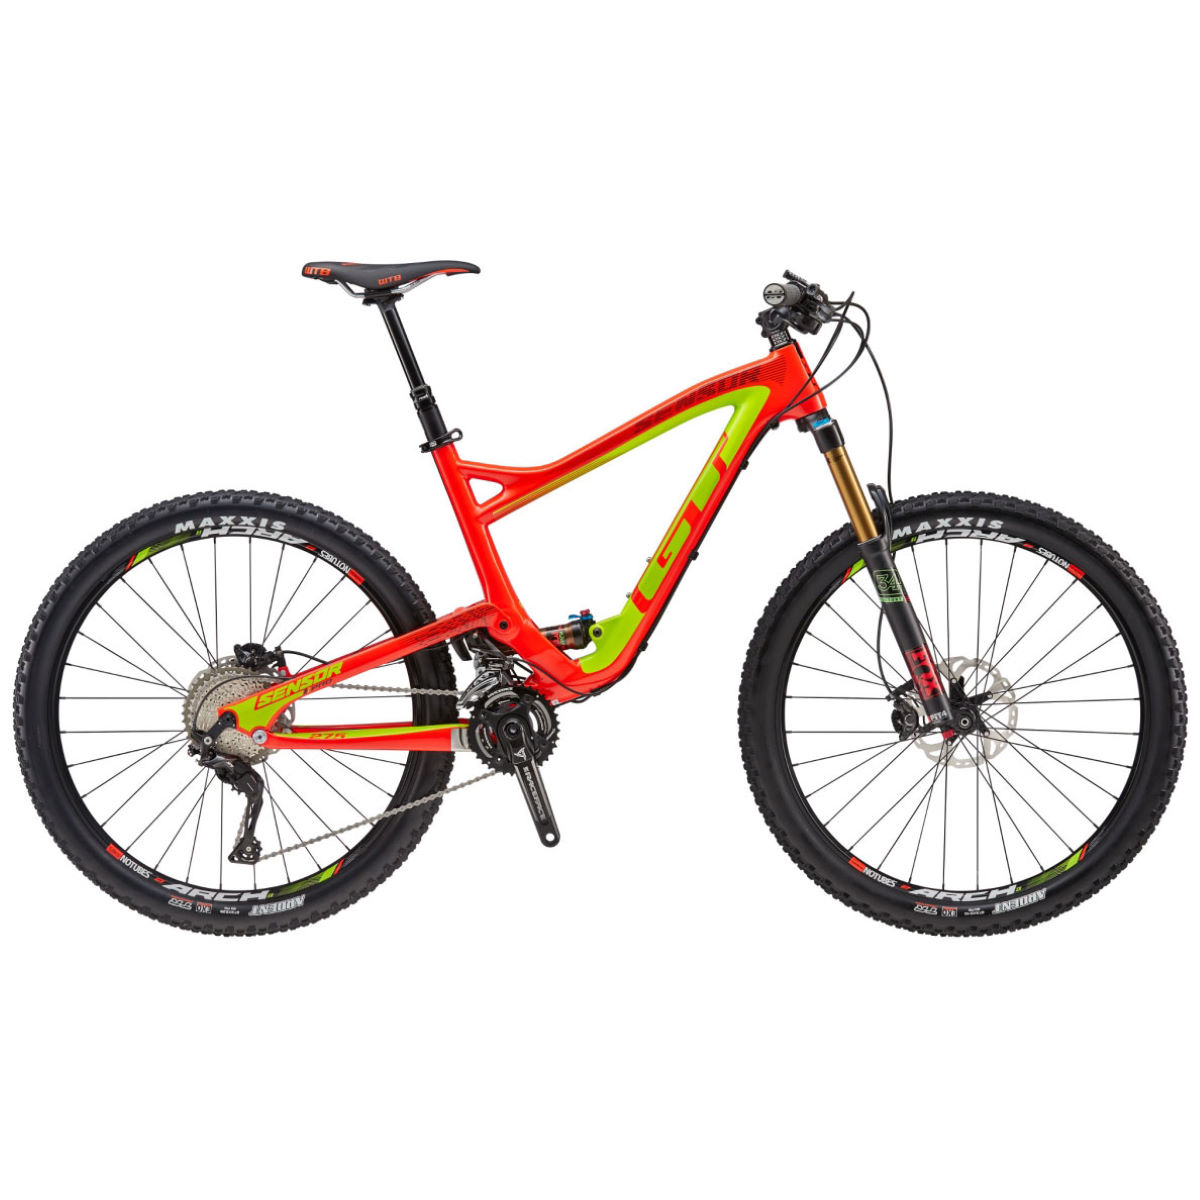 VTT GT Sensor Carbon Pro (2016) - Small Stock Bike Jaune VTT tout suspendu